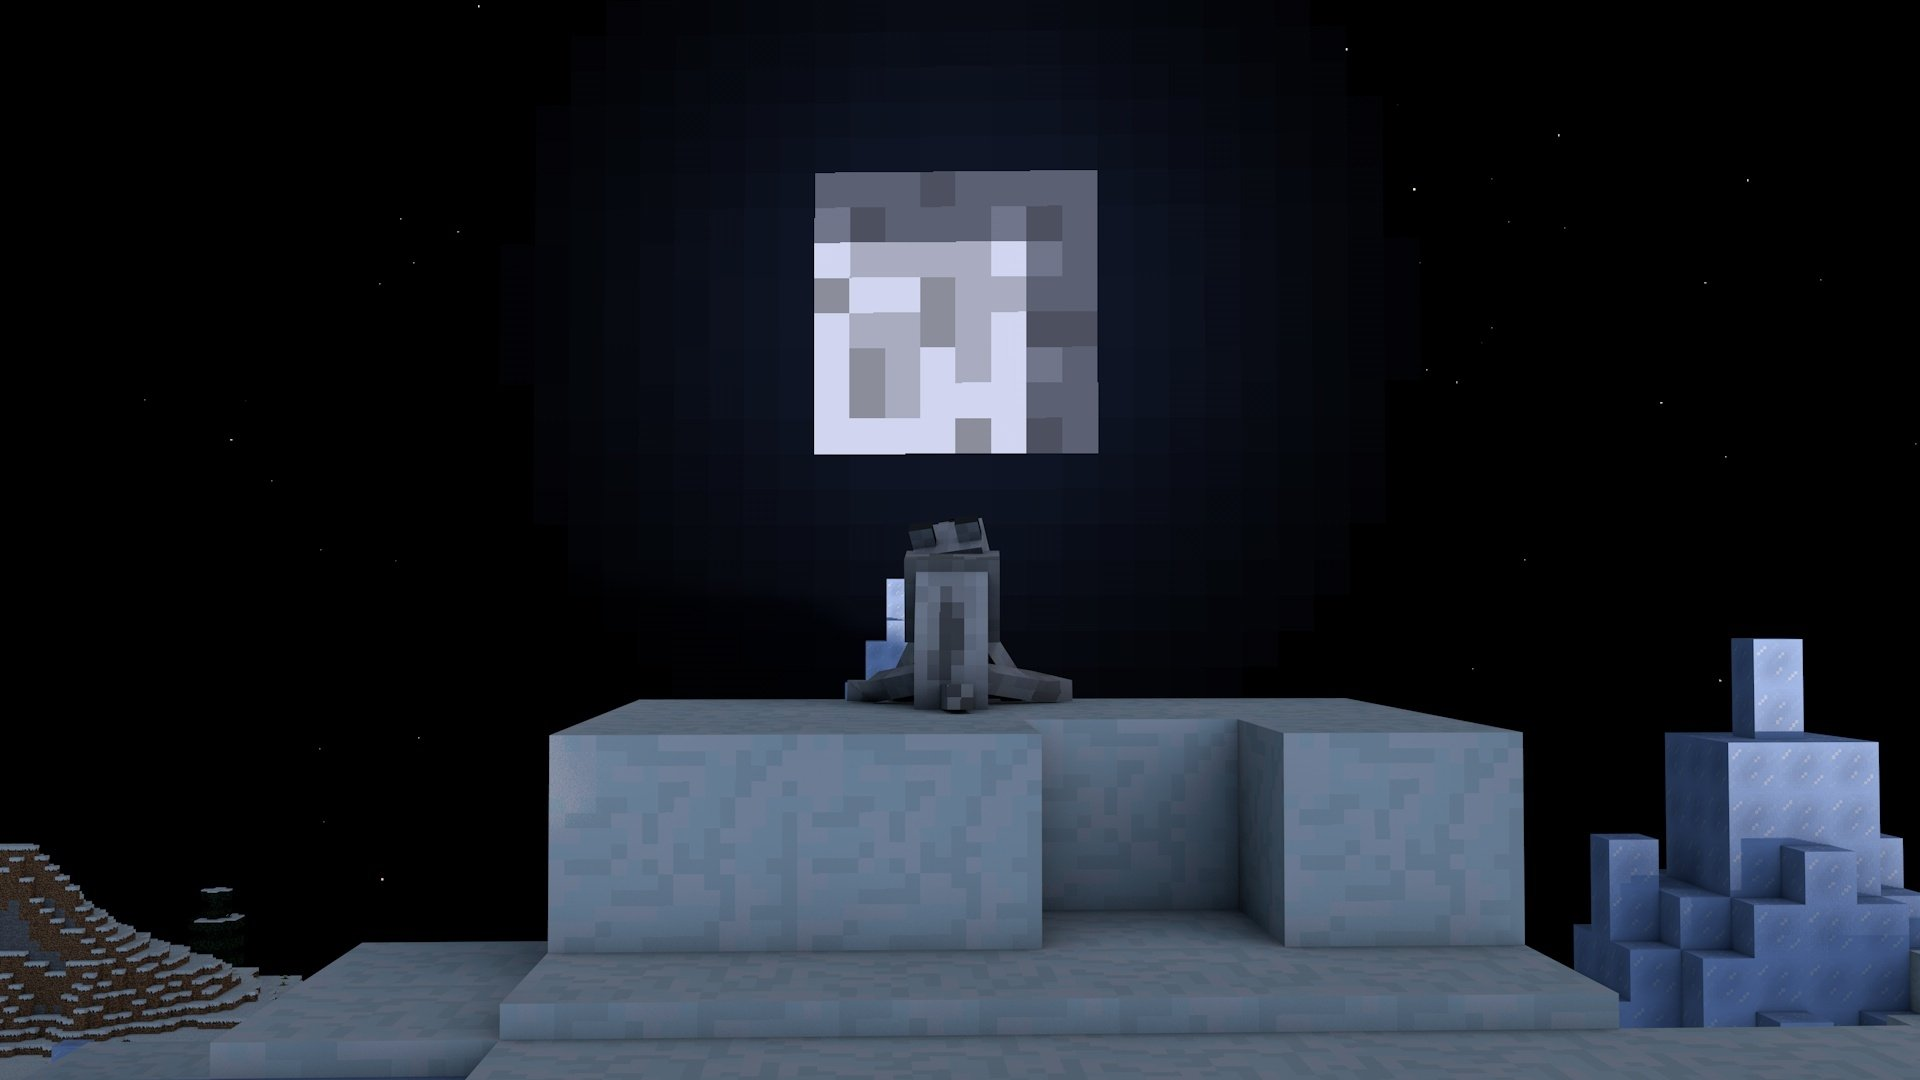 Image Result For Cool Minecraft Background